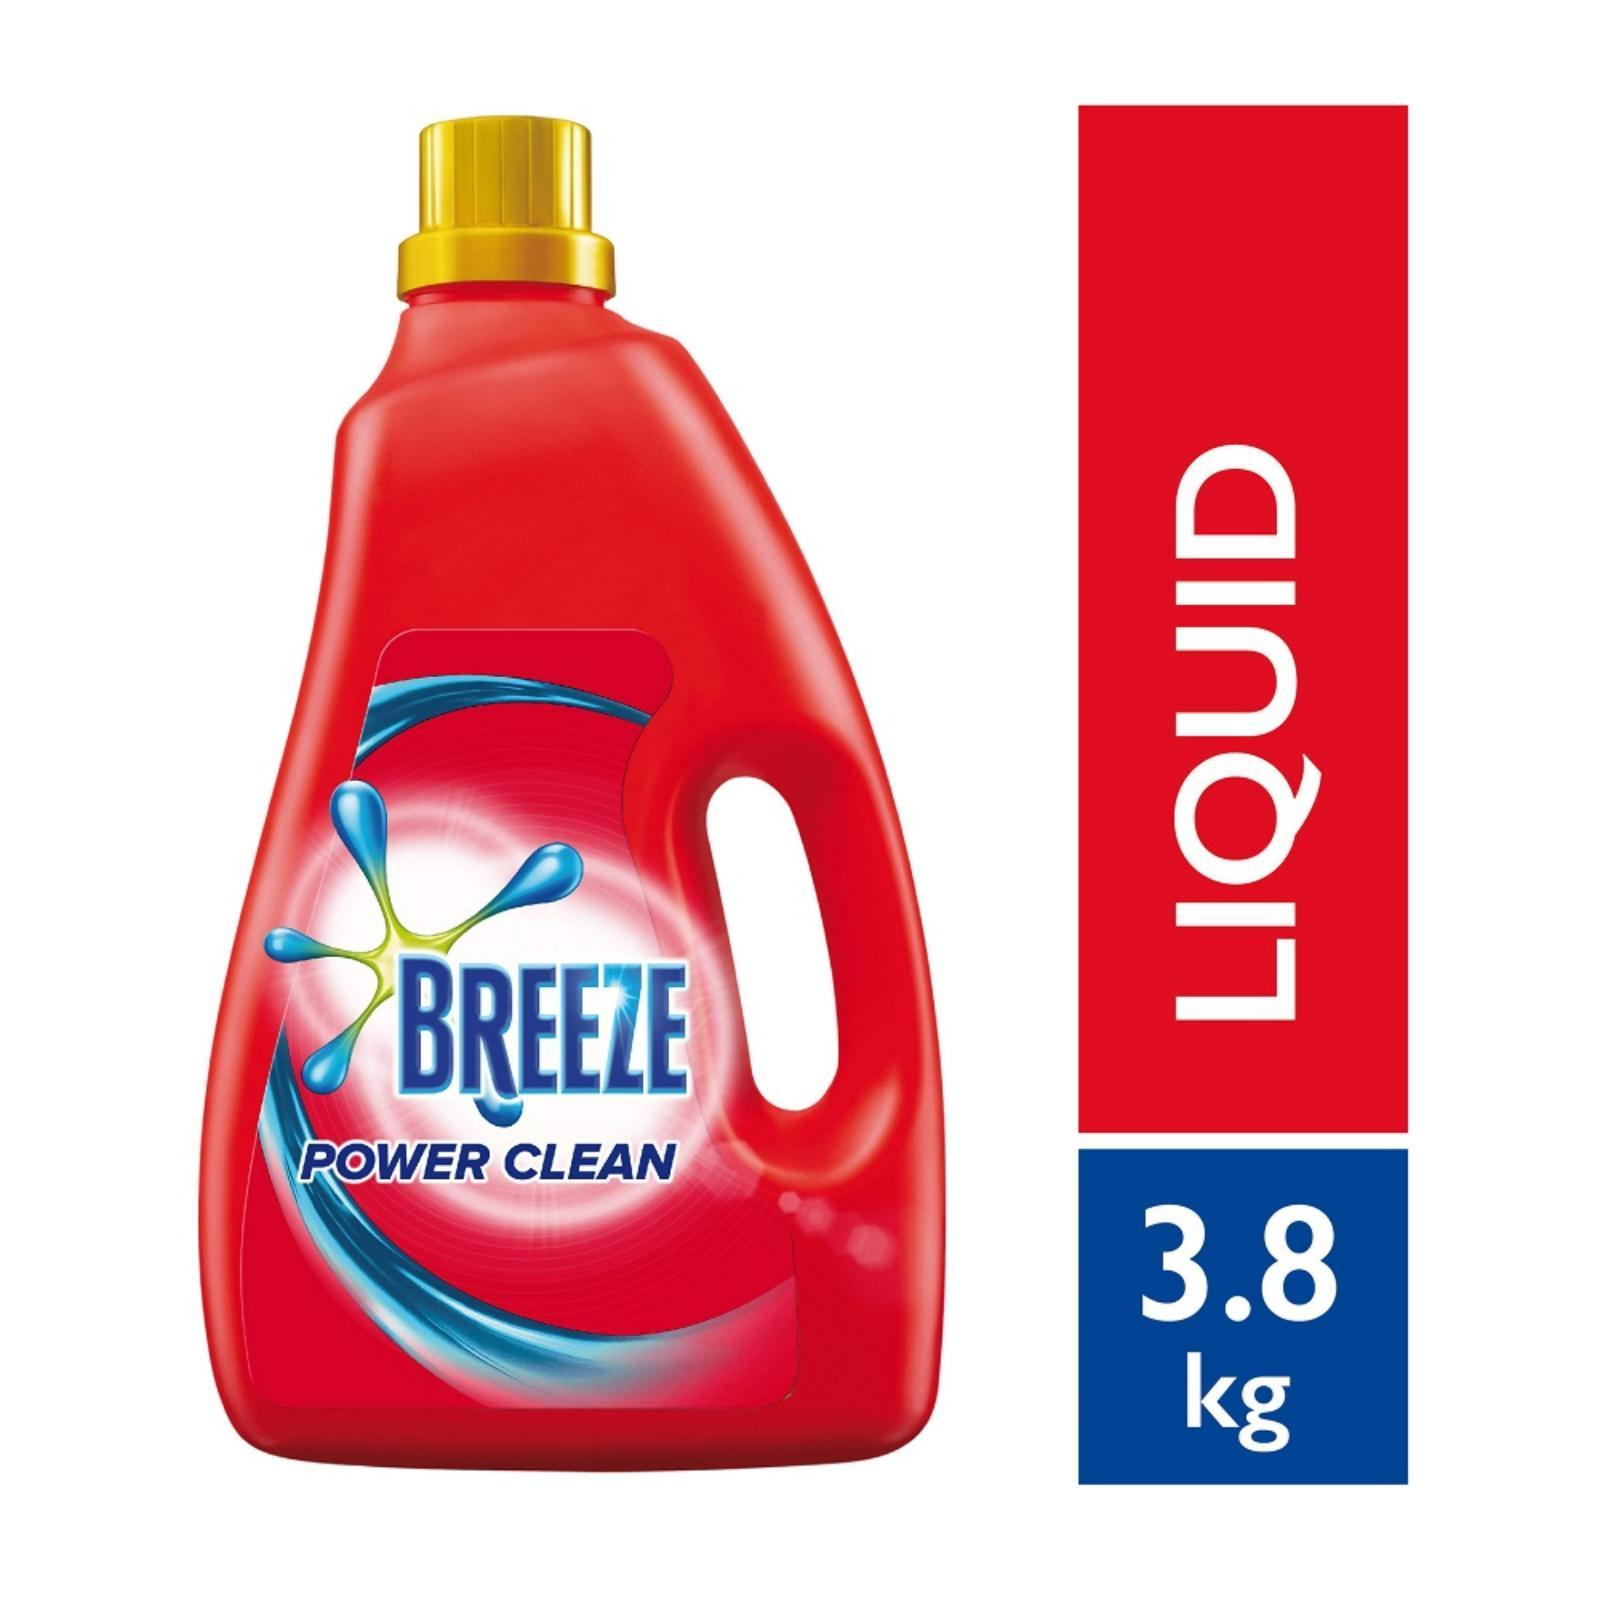 Breeze Power Clean Liquid Detergent